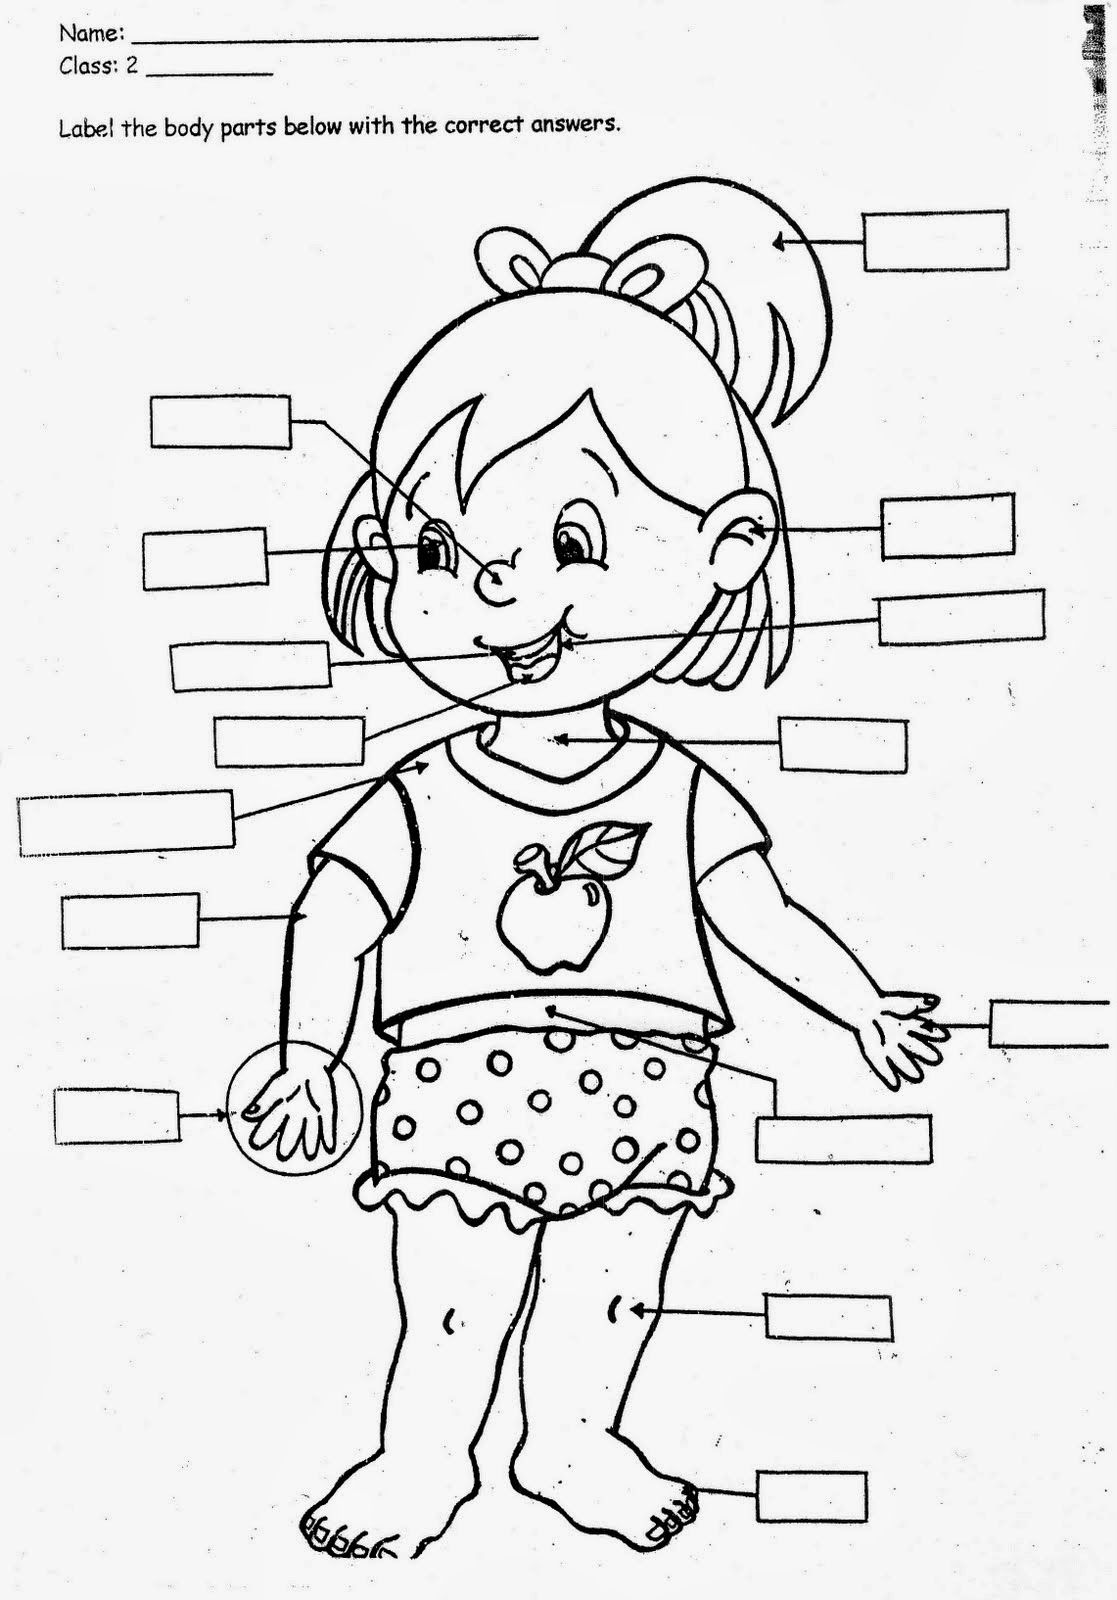 All About Me Coloring Page Atividades Partes Do Corpo